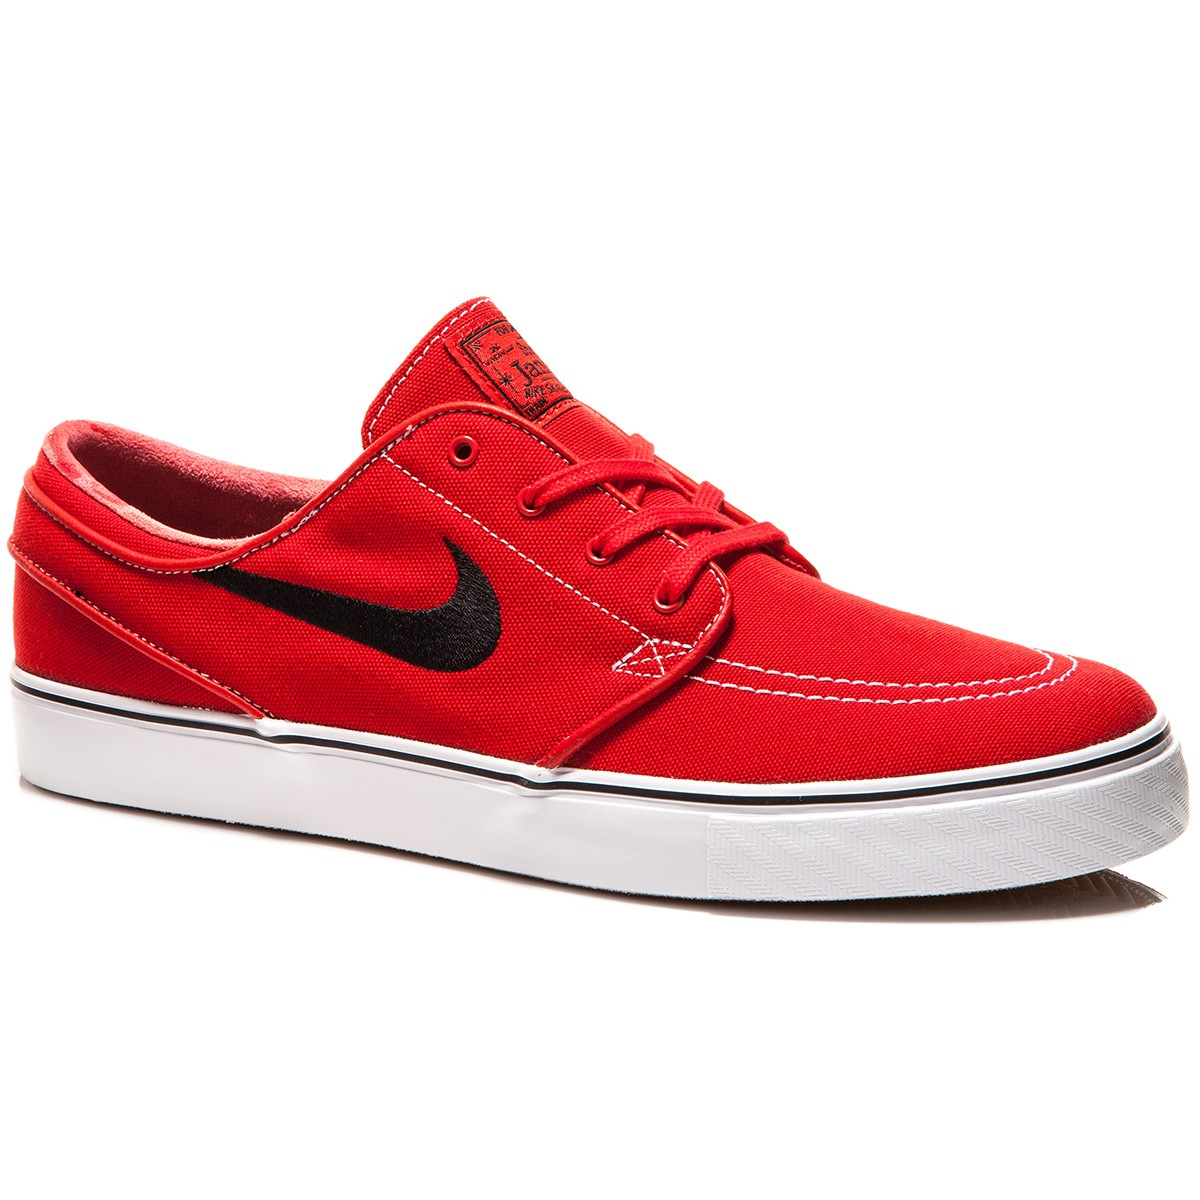 Nike Zoom Stefan Janoski Canvas Shoes - Red/Gum/Brown/White/Black - 8.0